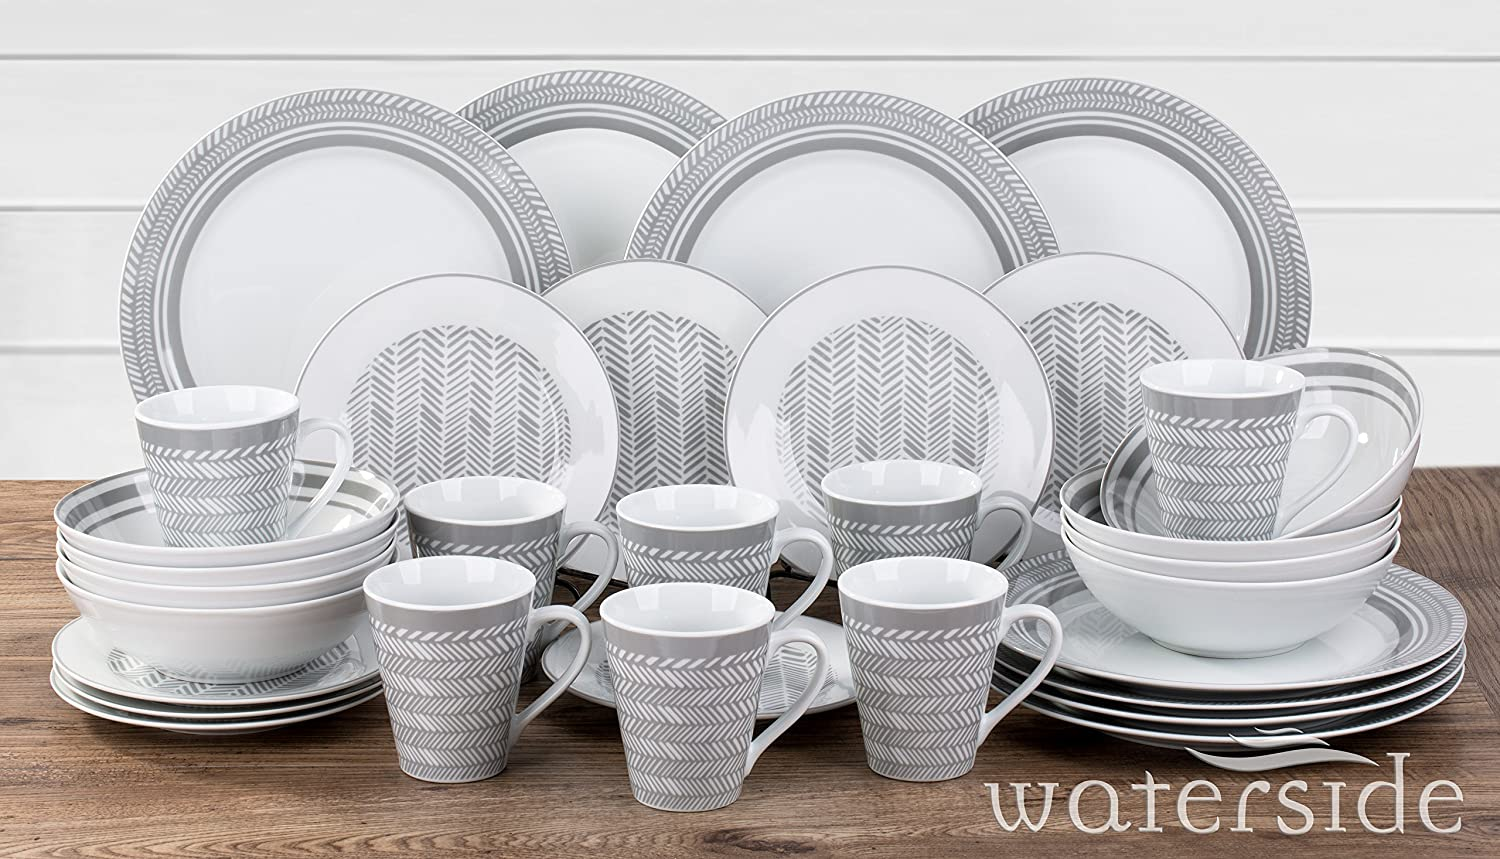 32 Piece Grey Herringbone Dinner Set Waterside Fine China